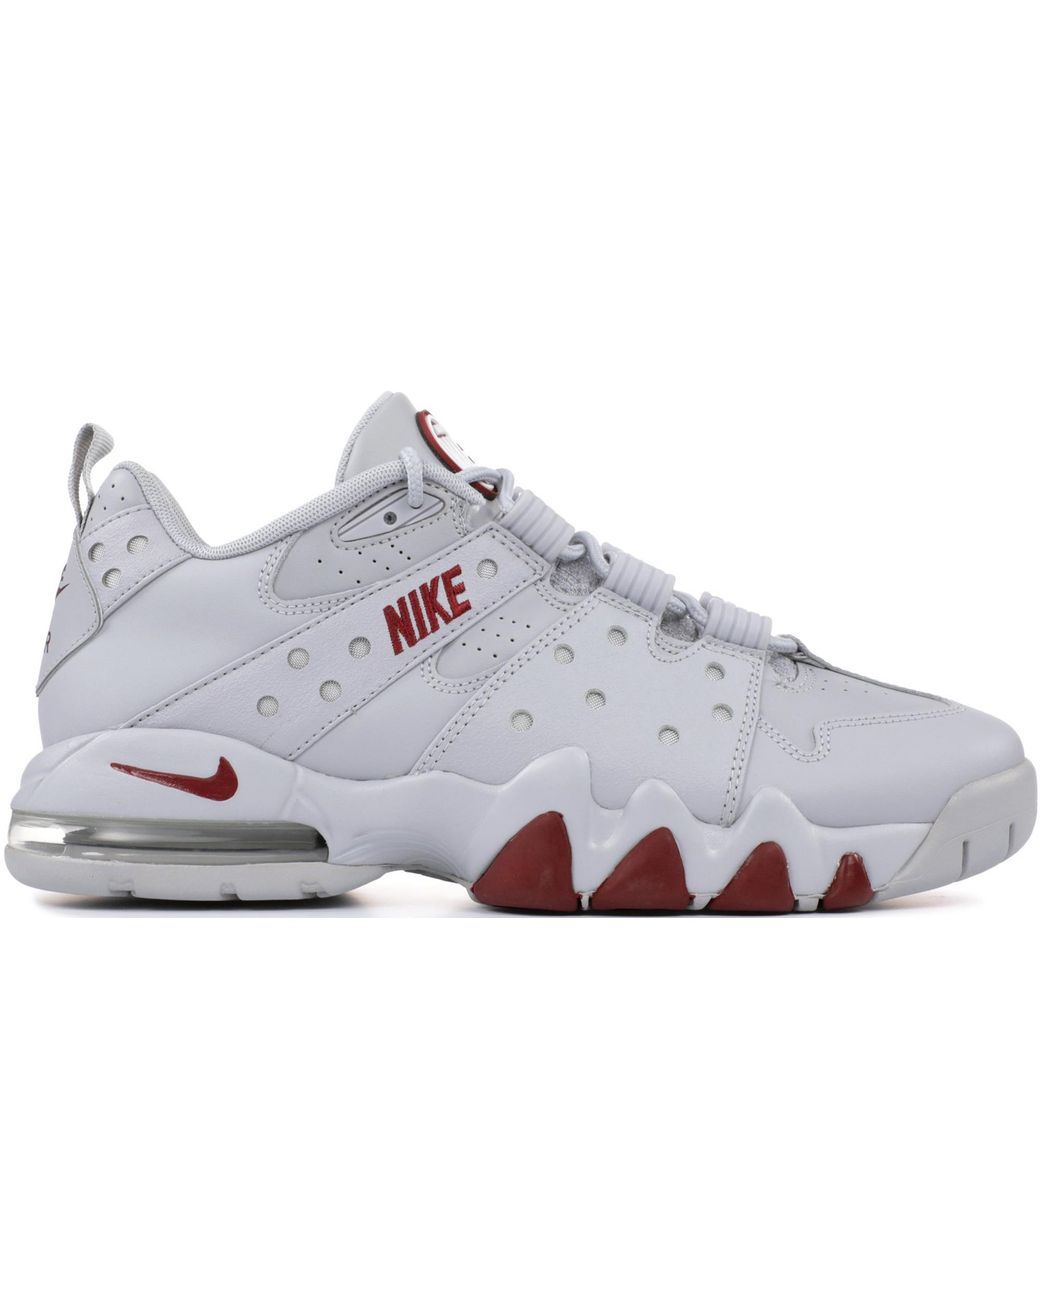 Nike Air Max 95 JD Cool GreyTeam Red | Sole Collector